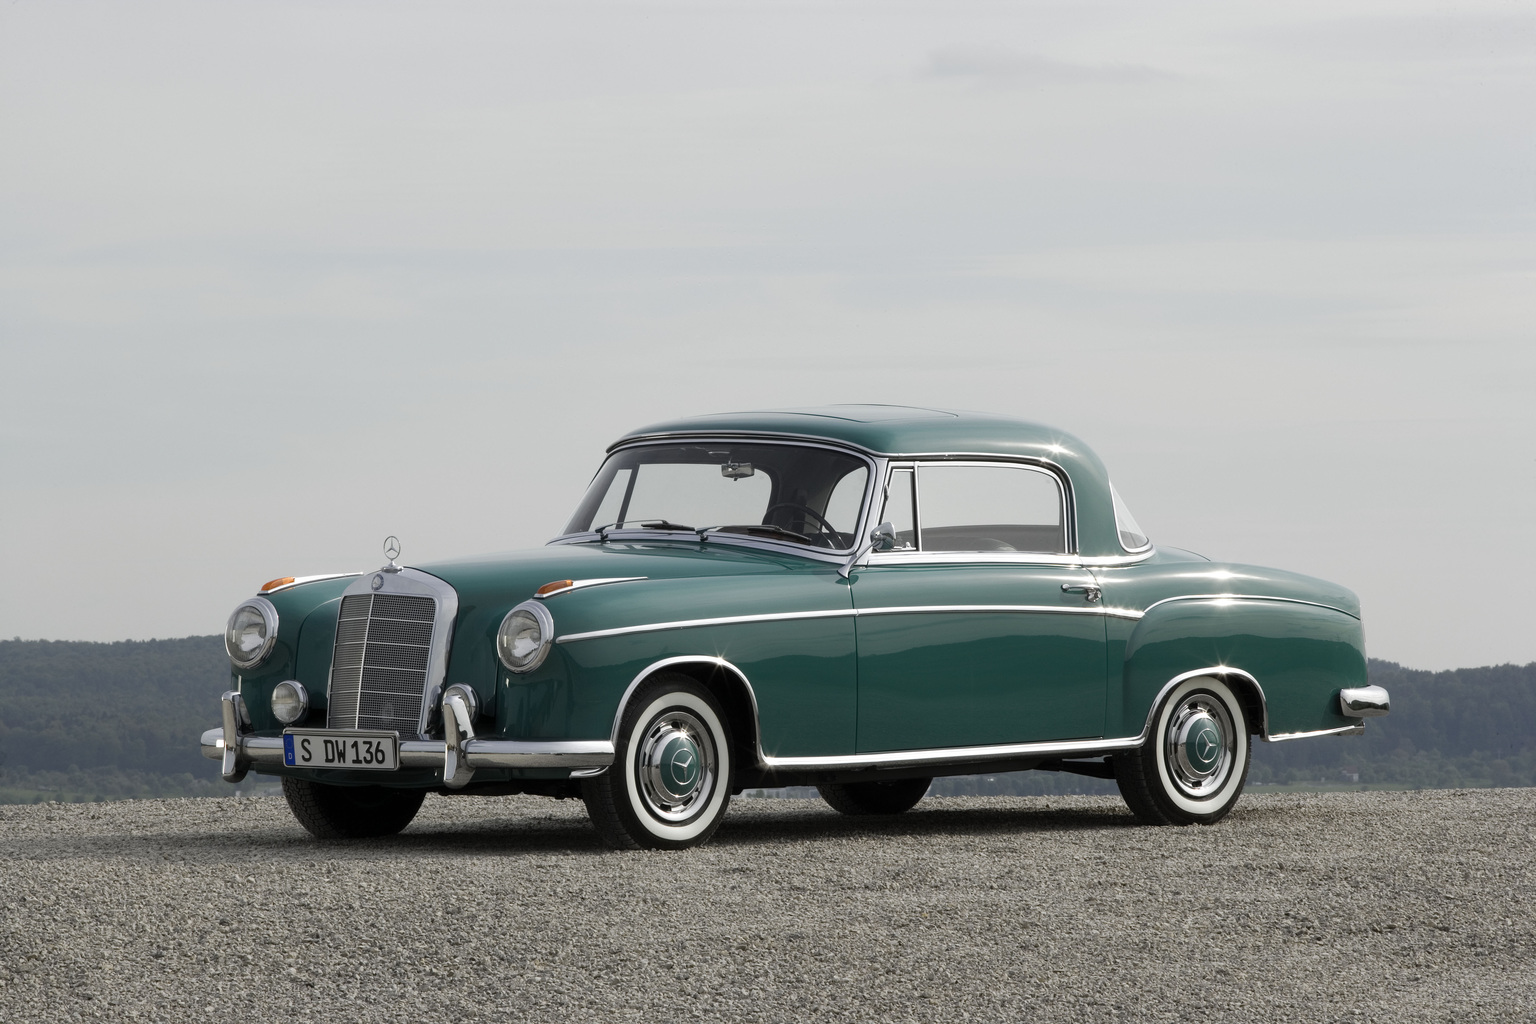 1959 1960 mercedes benz 220 se coup review for 1958 mercedes benz 220s for sale